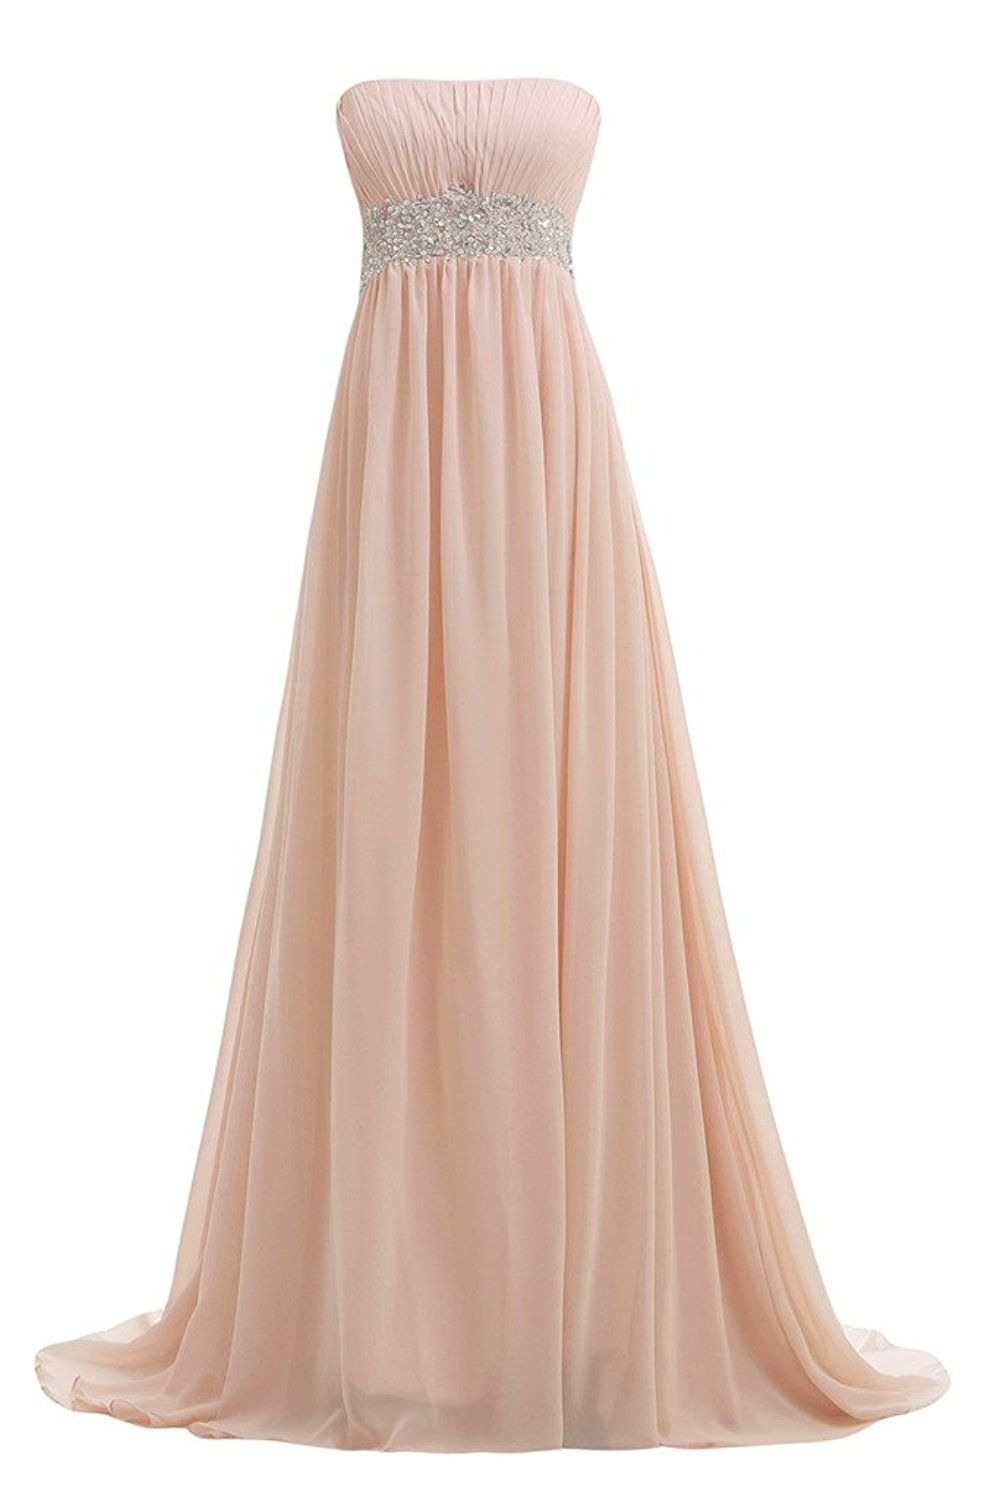 Designer Luxus Abendkleid Amazon Design20 Einzigartig Abendkleid Amazon Stylish